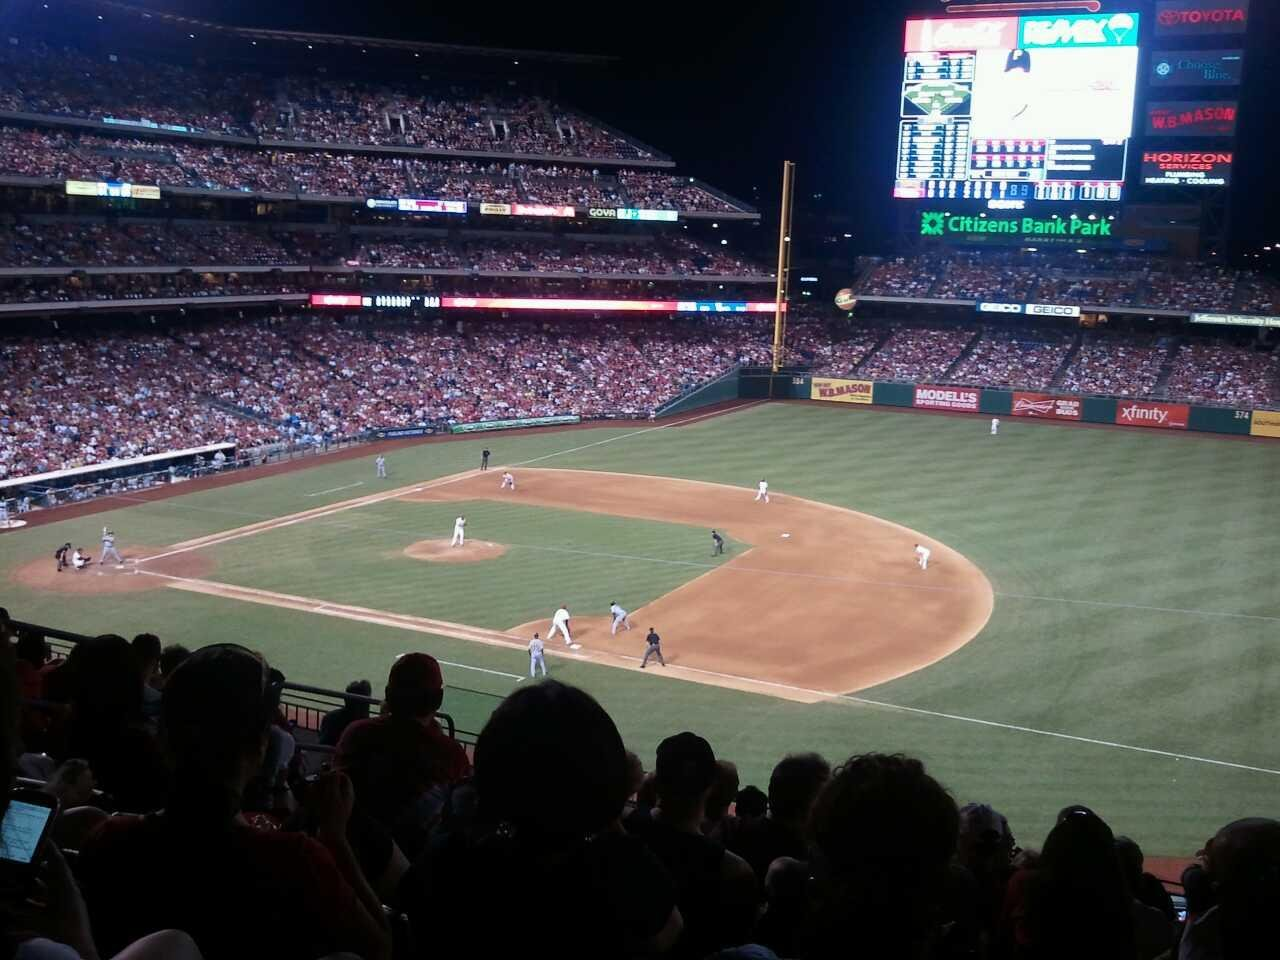 Citizens Bank Park Section 212 Row 9 Seat 16